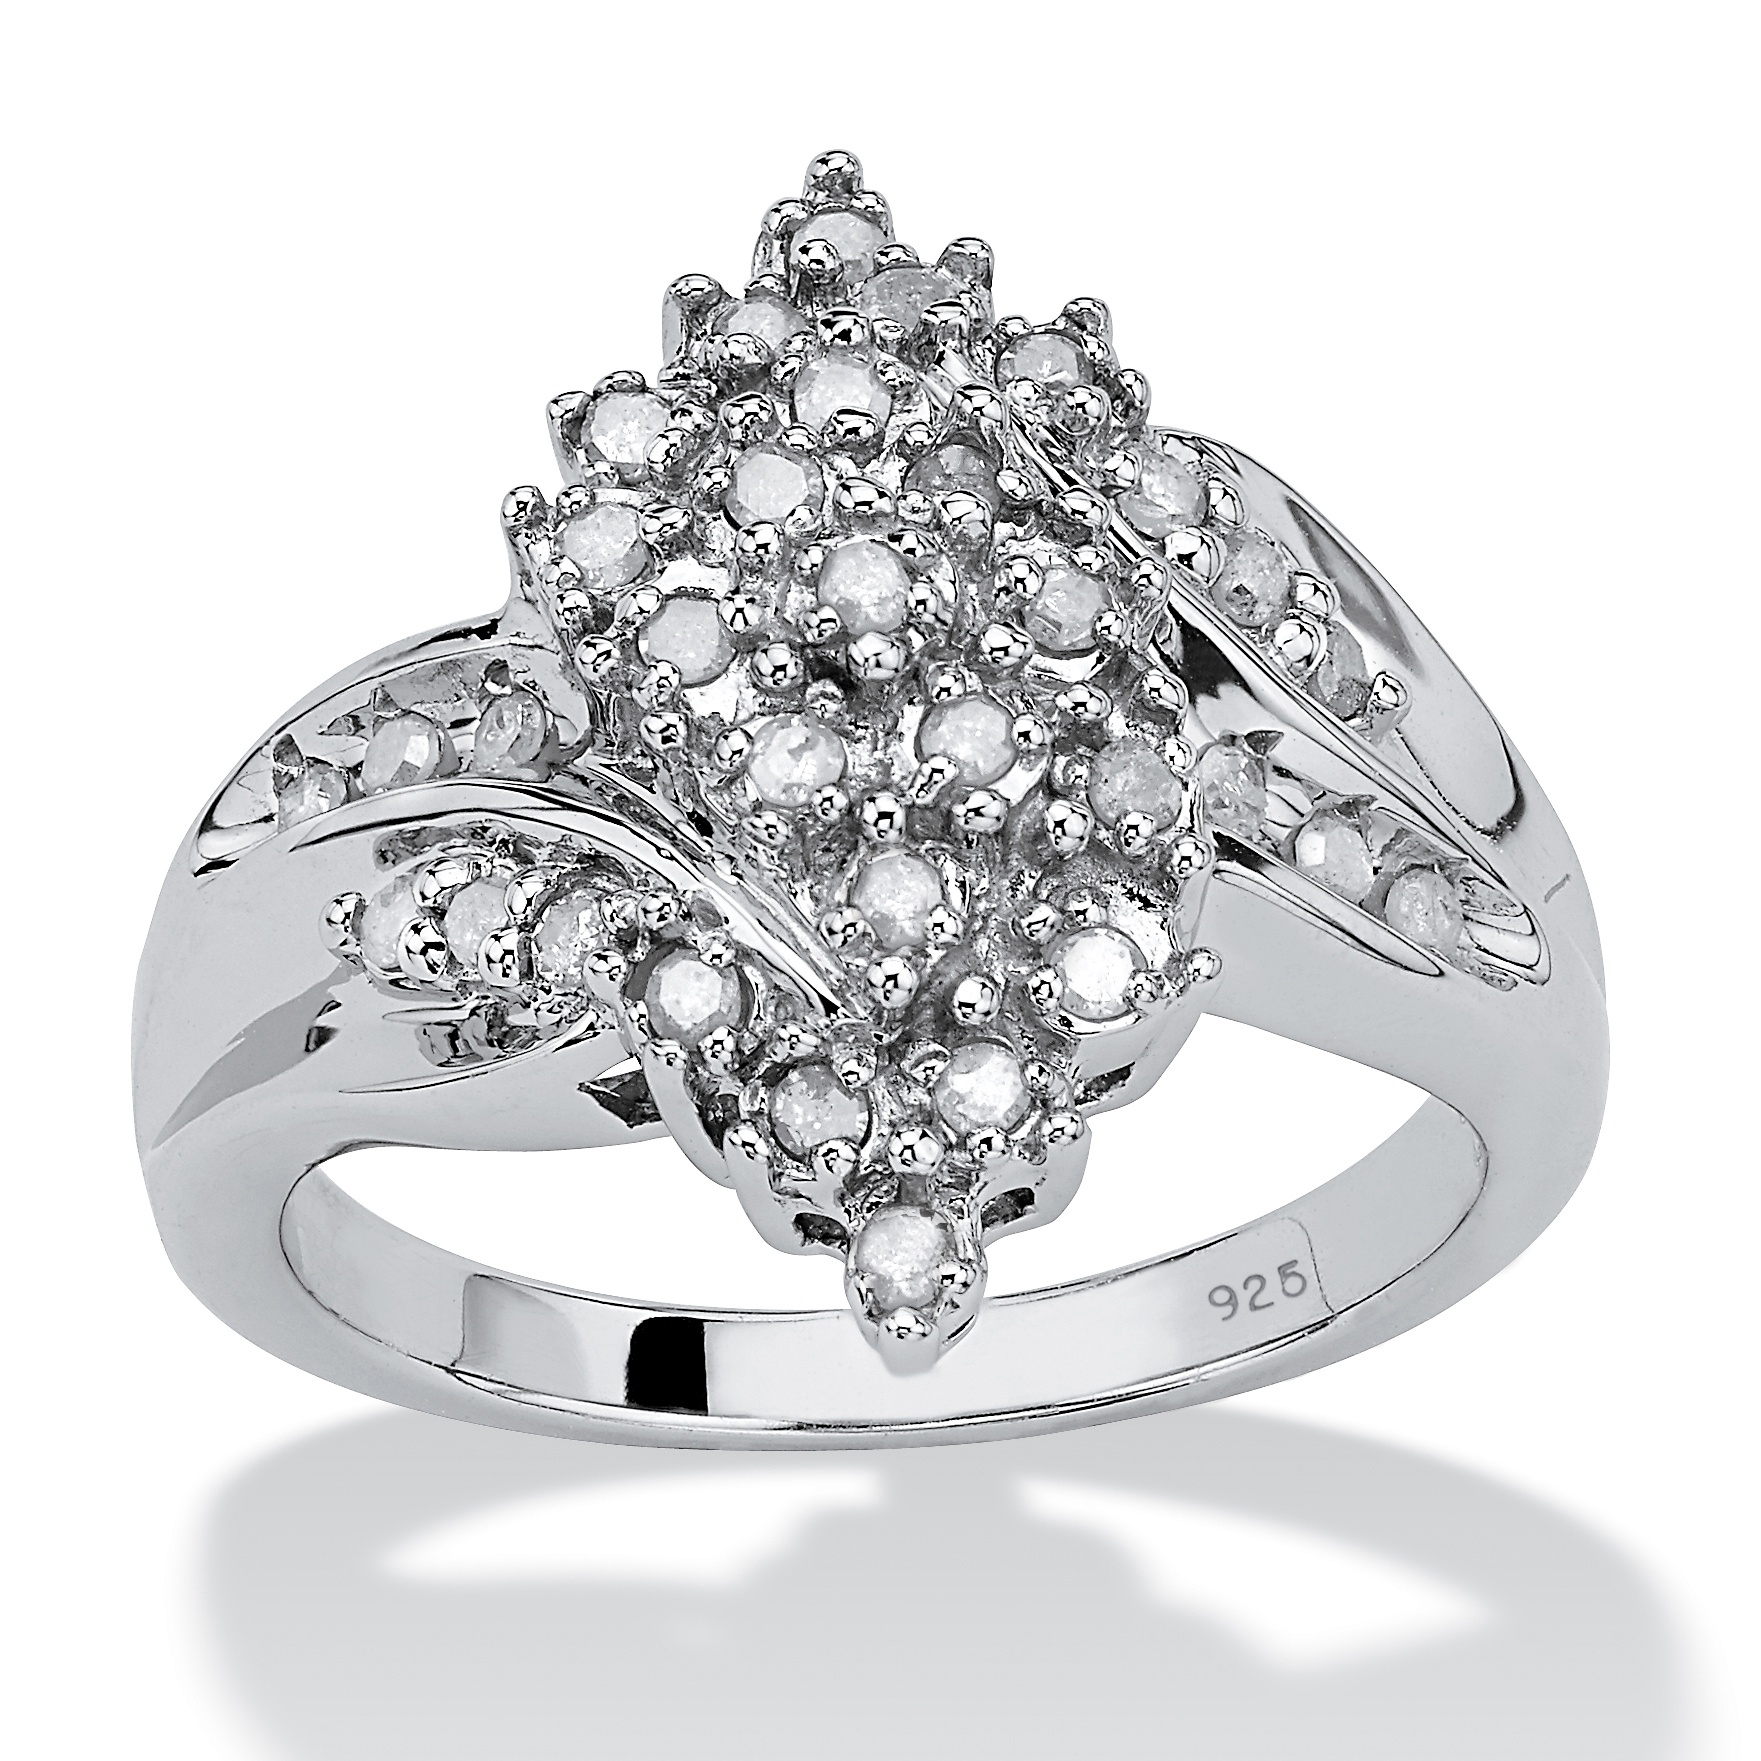 3 8 TCW Round Ice Diamond Platinum over Sterling Silver Cluster Swirl Ring by PalmBeach Jewelry